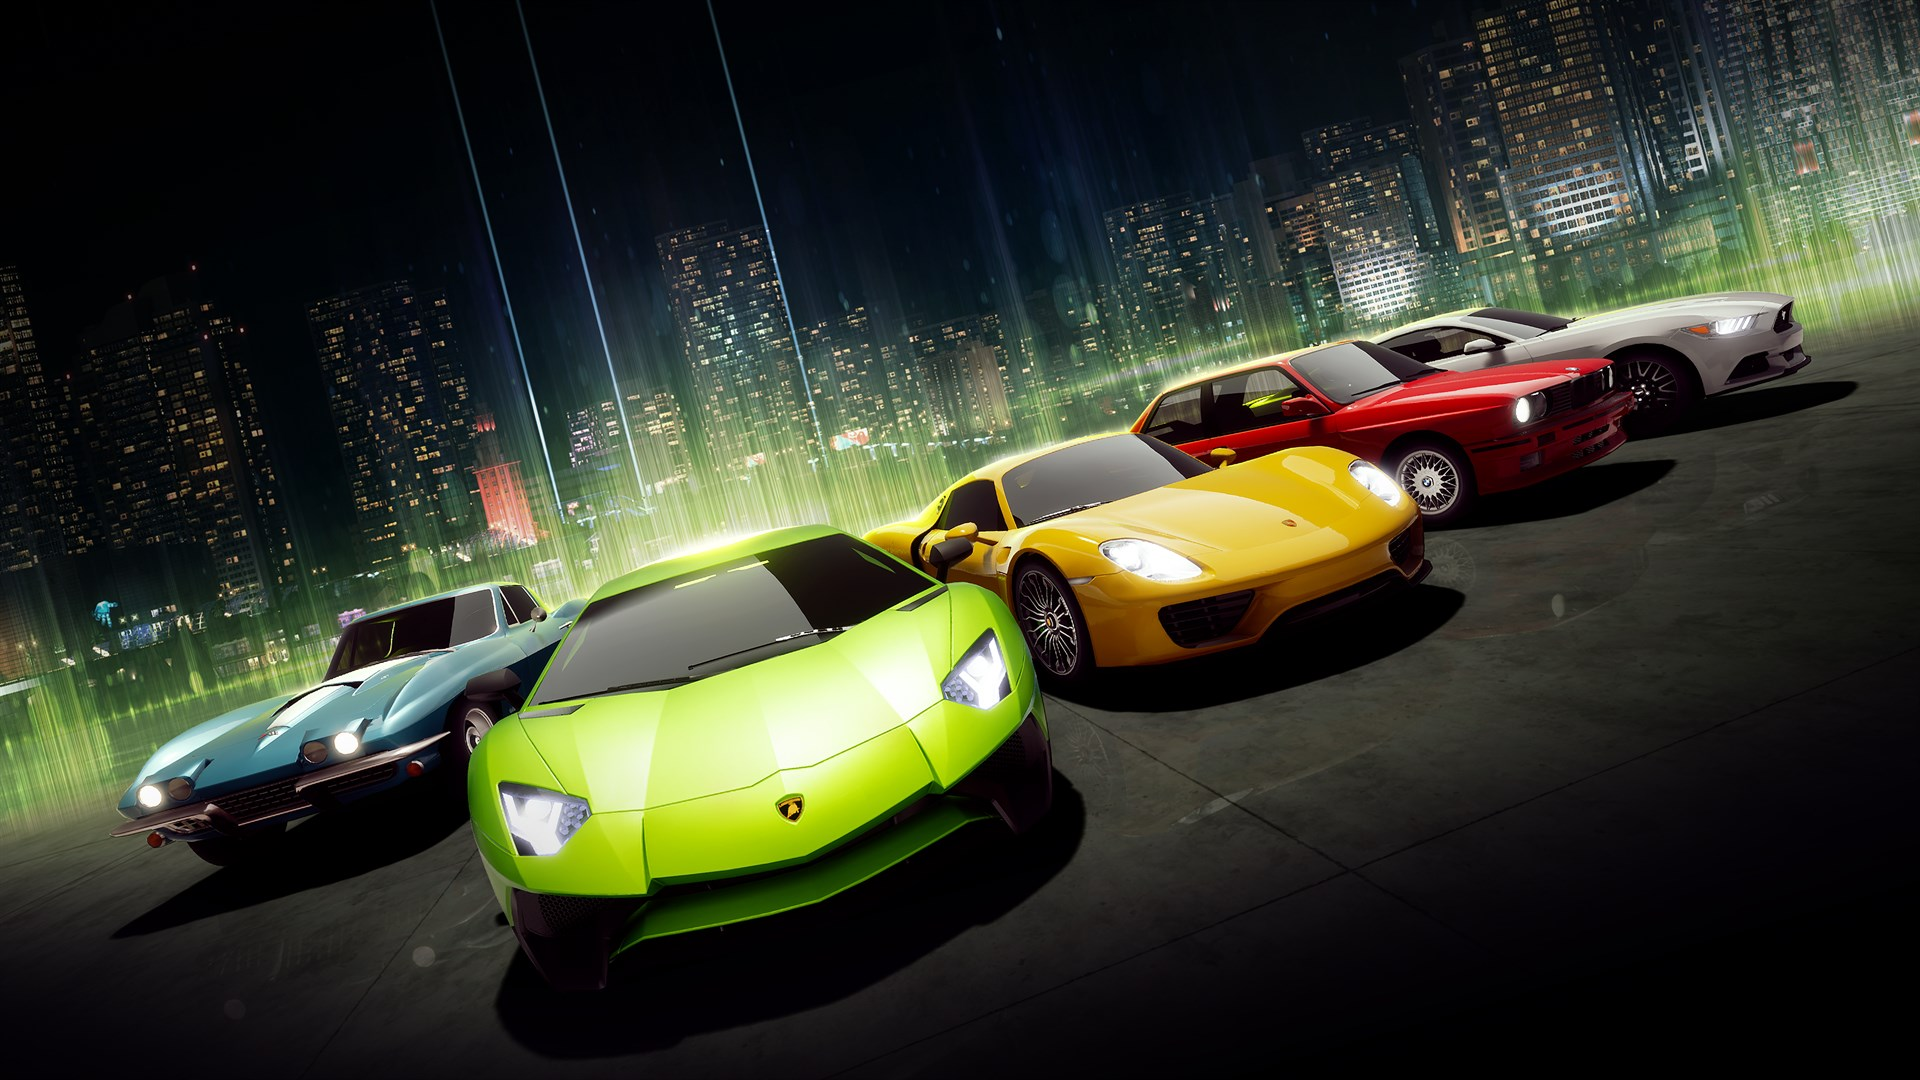 Forza Street is a new free-to-play racing game coming to